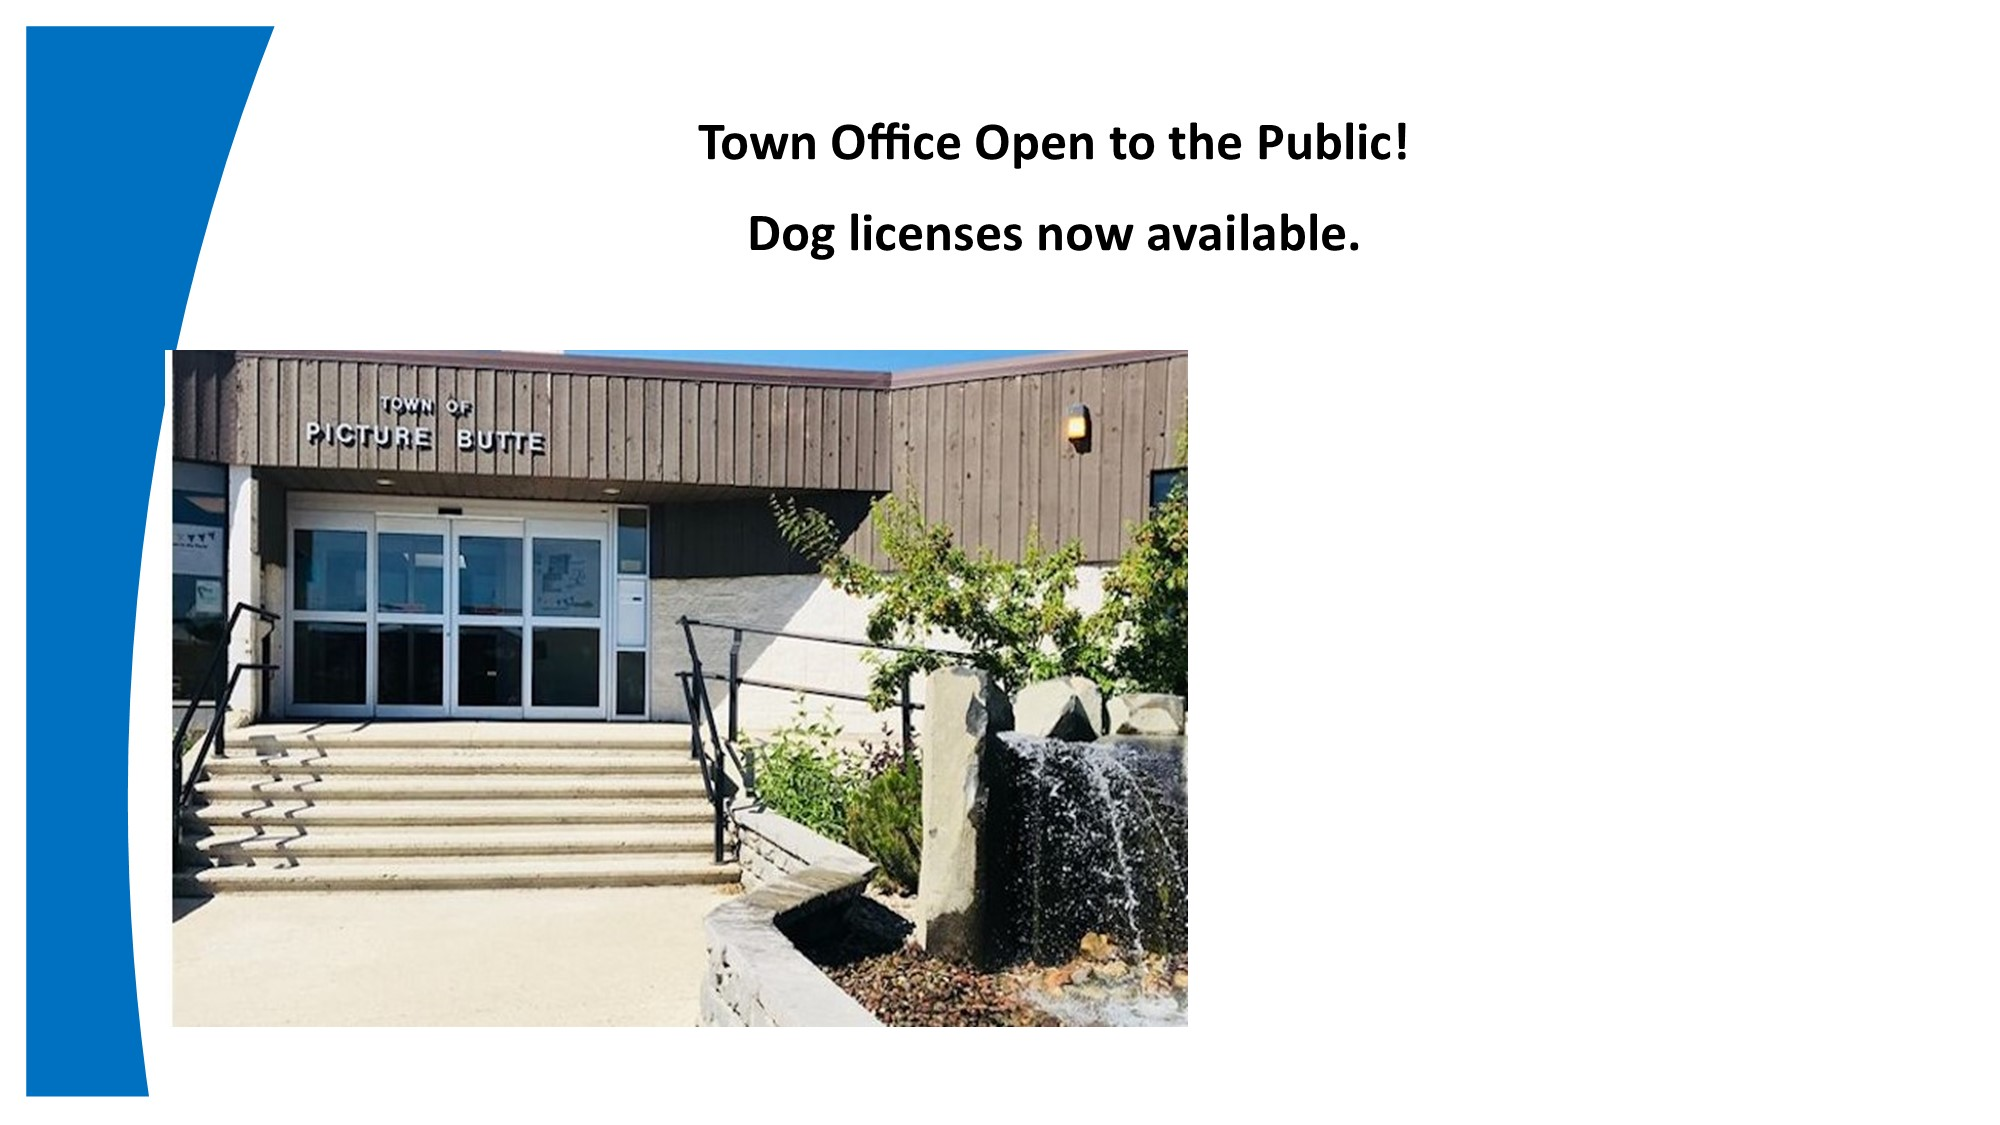 <div id=slideshow_title>Town Office Open</div> <br>Town Office is now open to the public. Come on in and receive your Dog license.